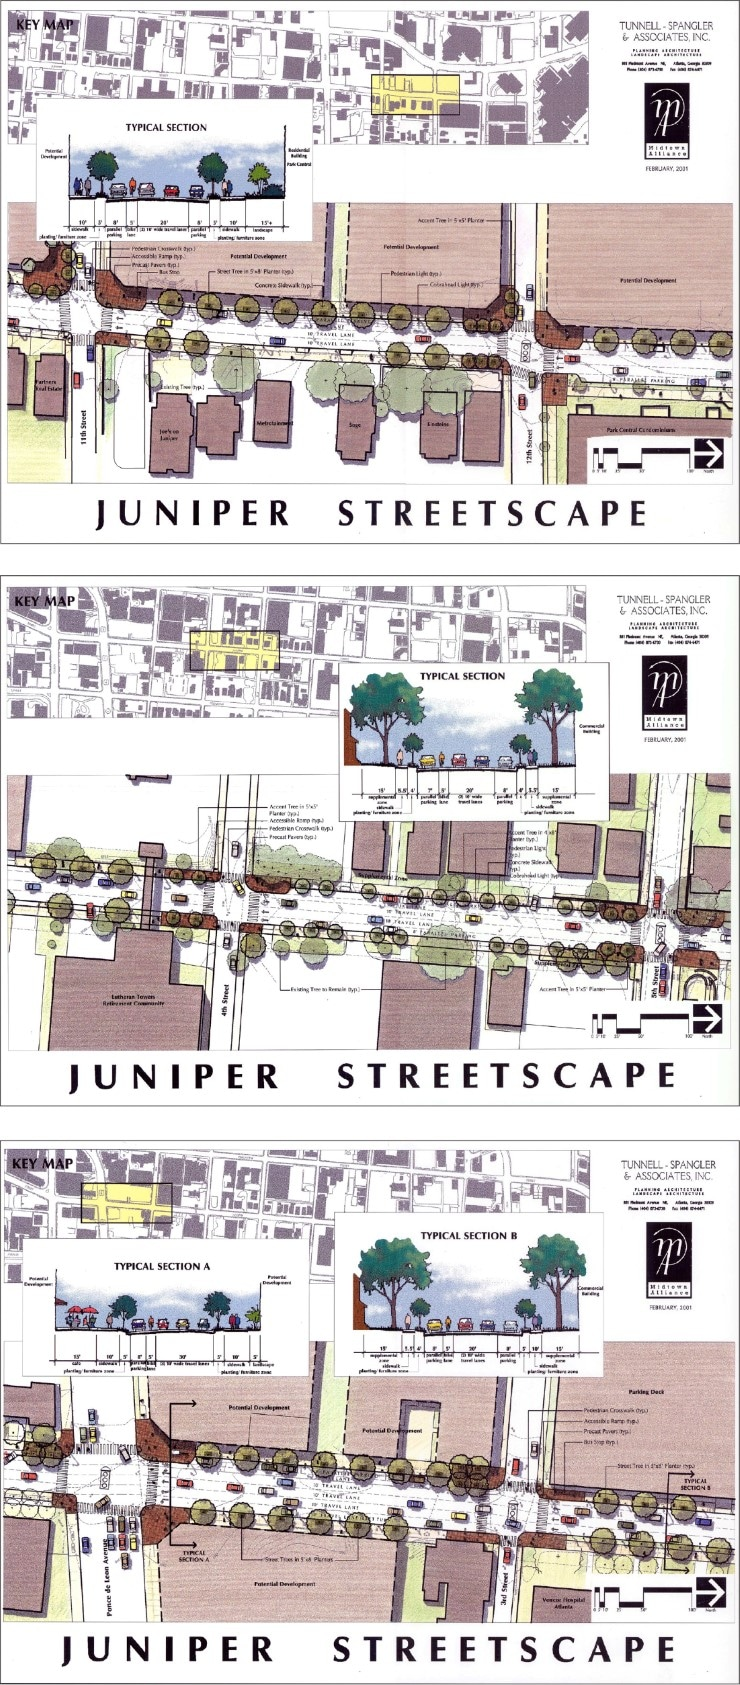 Juniper Street Streetscapes